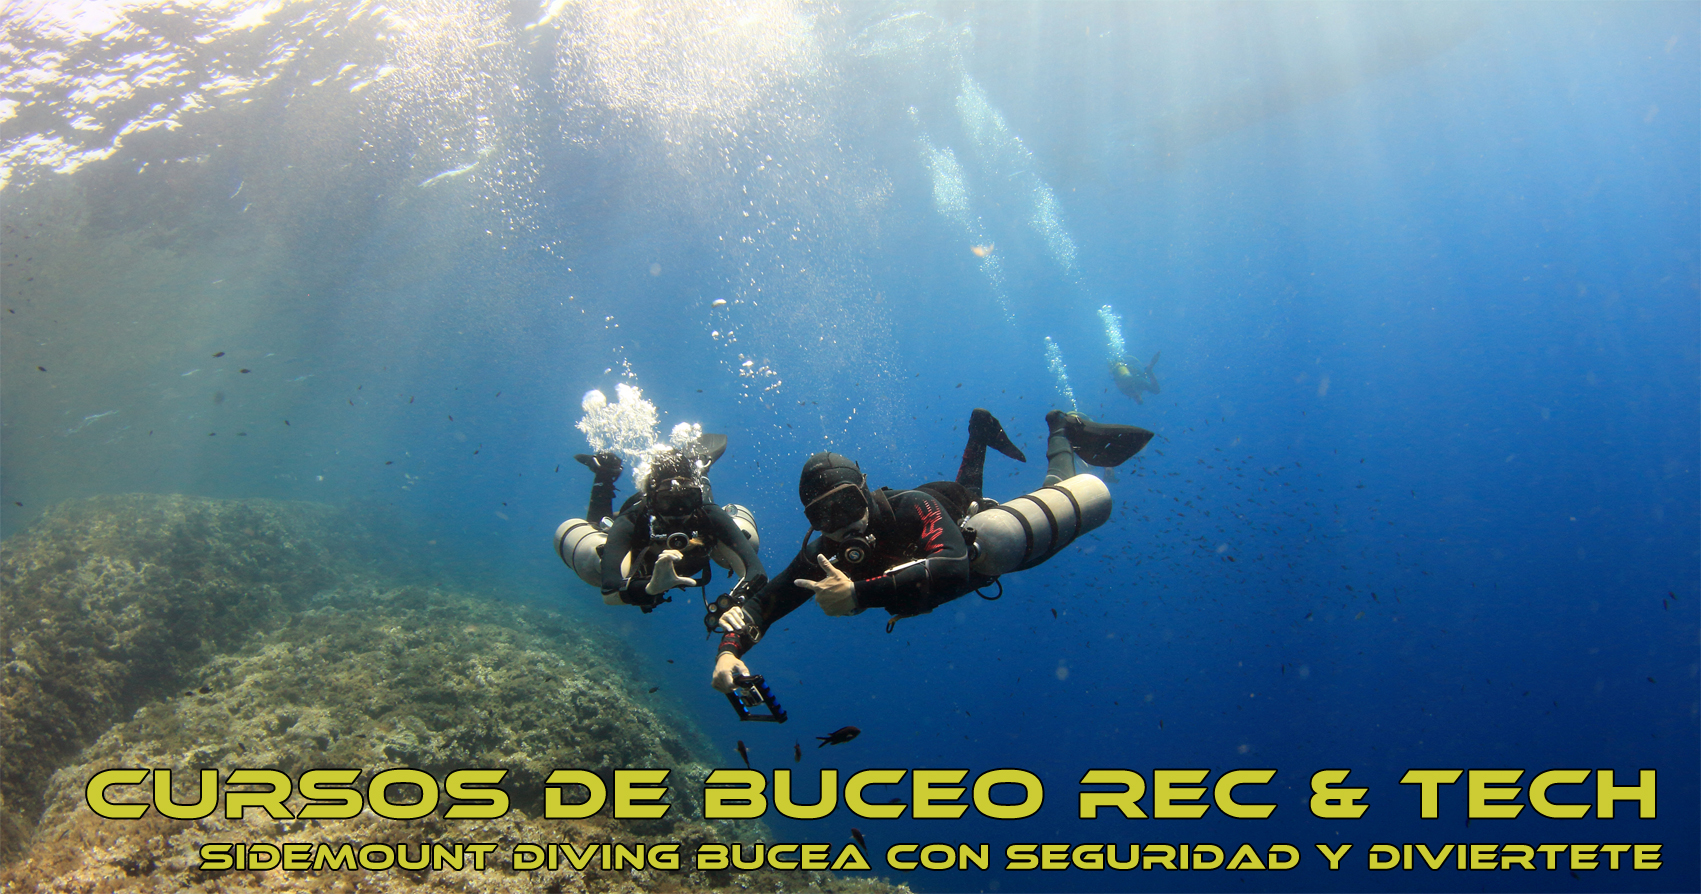 cursos-buceo-sidmeount-recreativo-y-tecnico-%c2%b7-sidemount-courses-recreational-and-technical